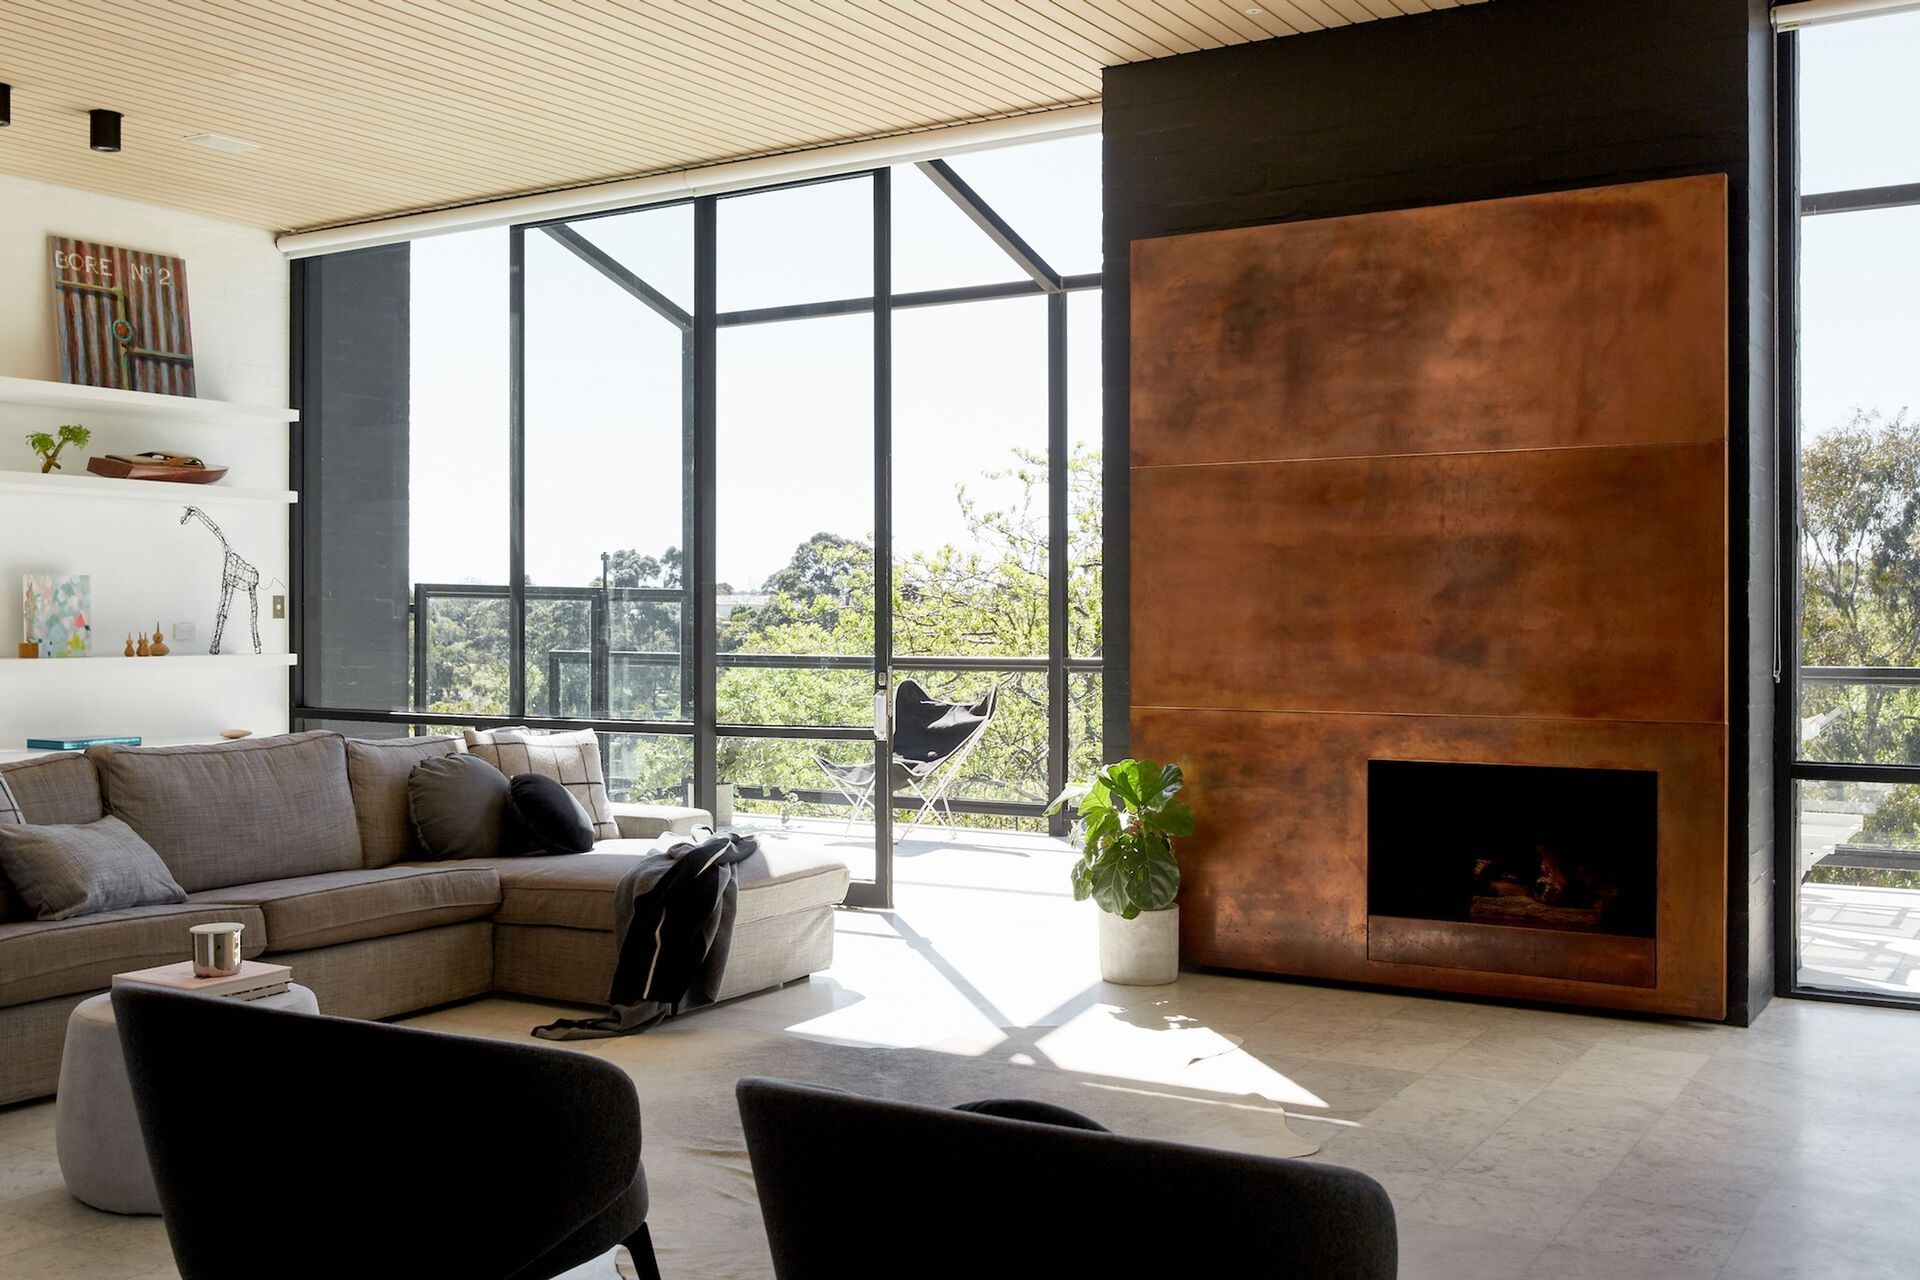 the open plan living / dining area